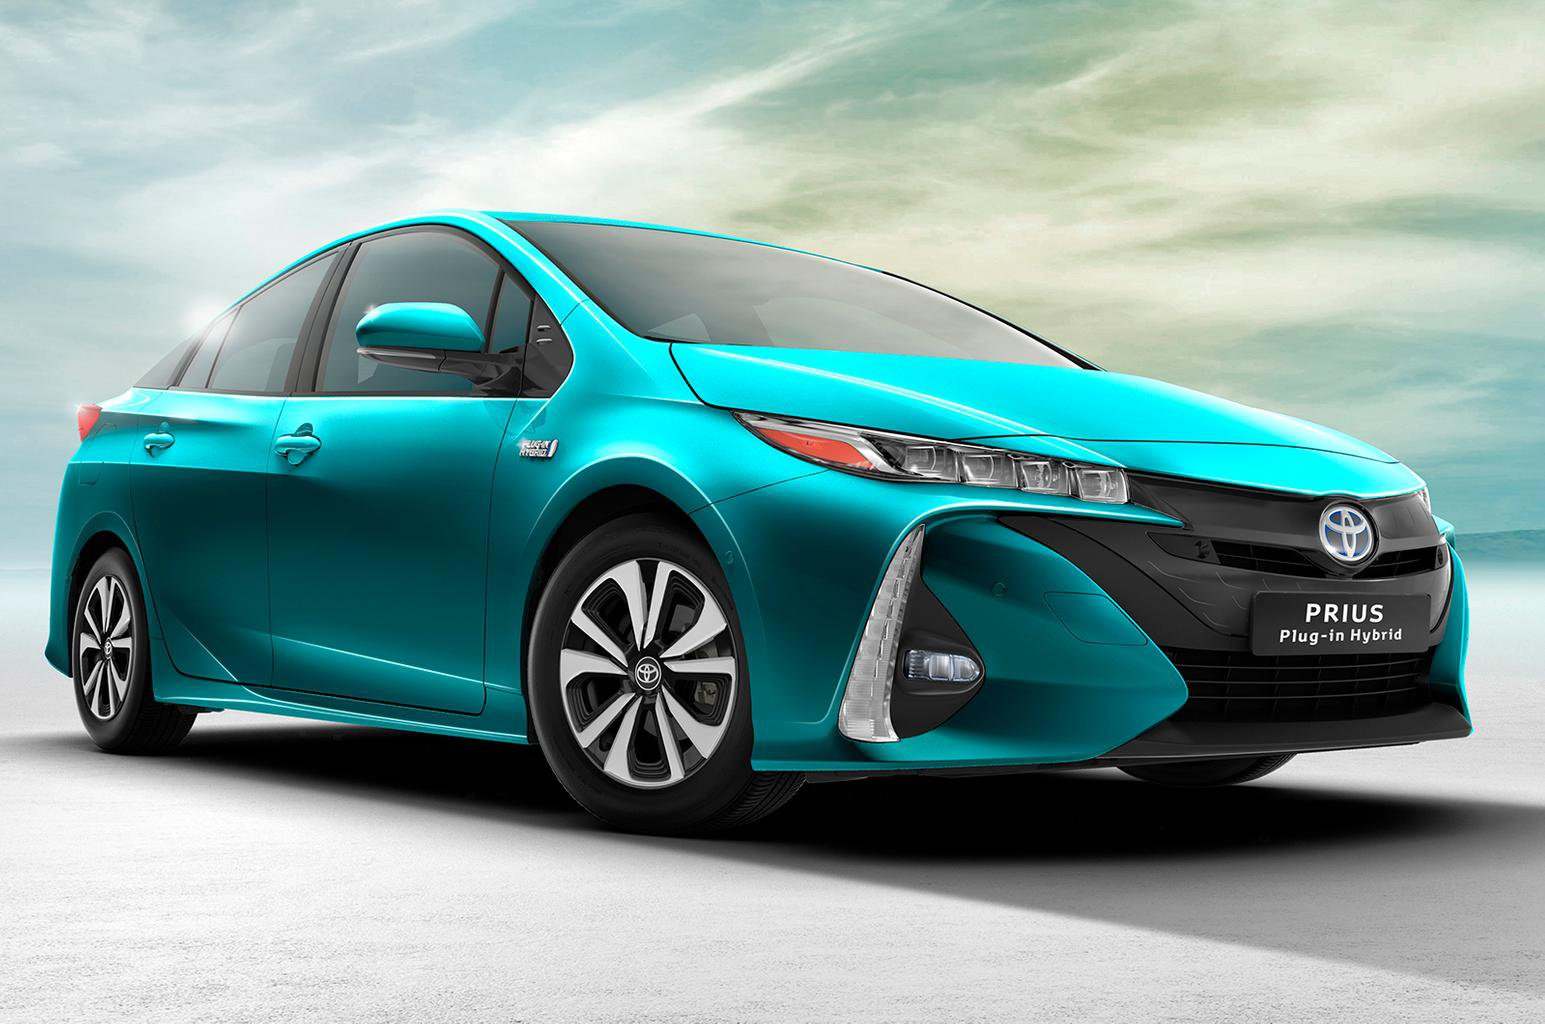 Toyota Prius Plug-in Hybrid revealed at New York motor show